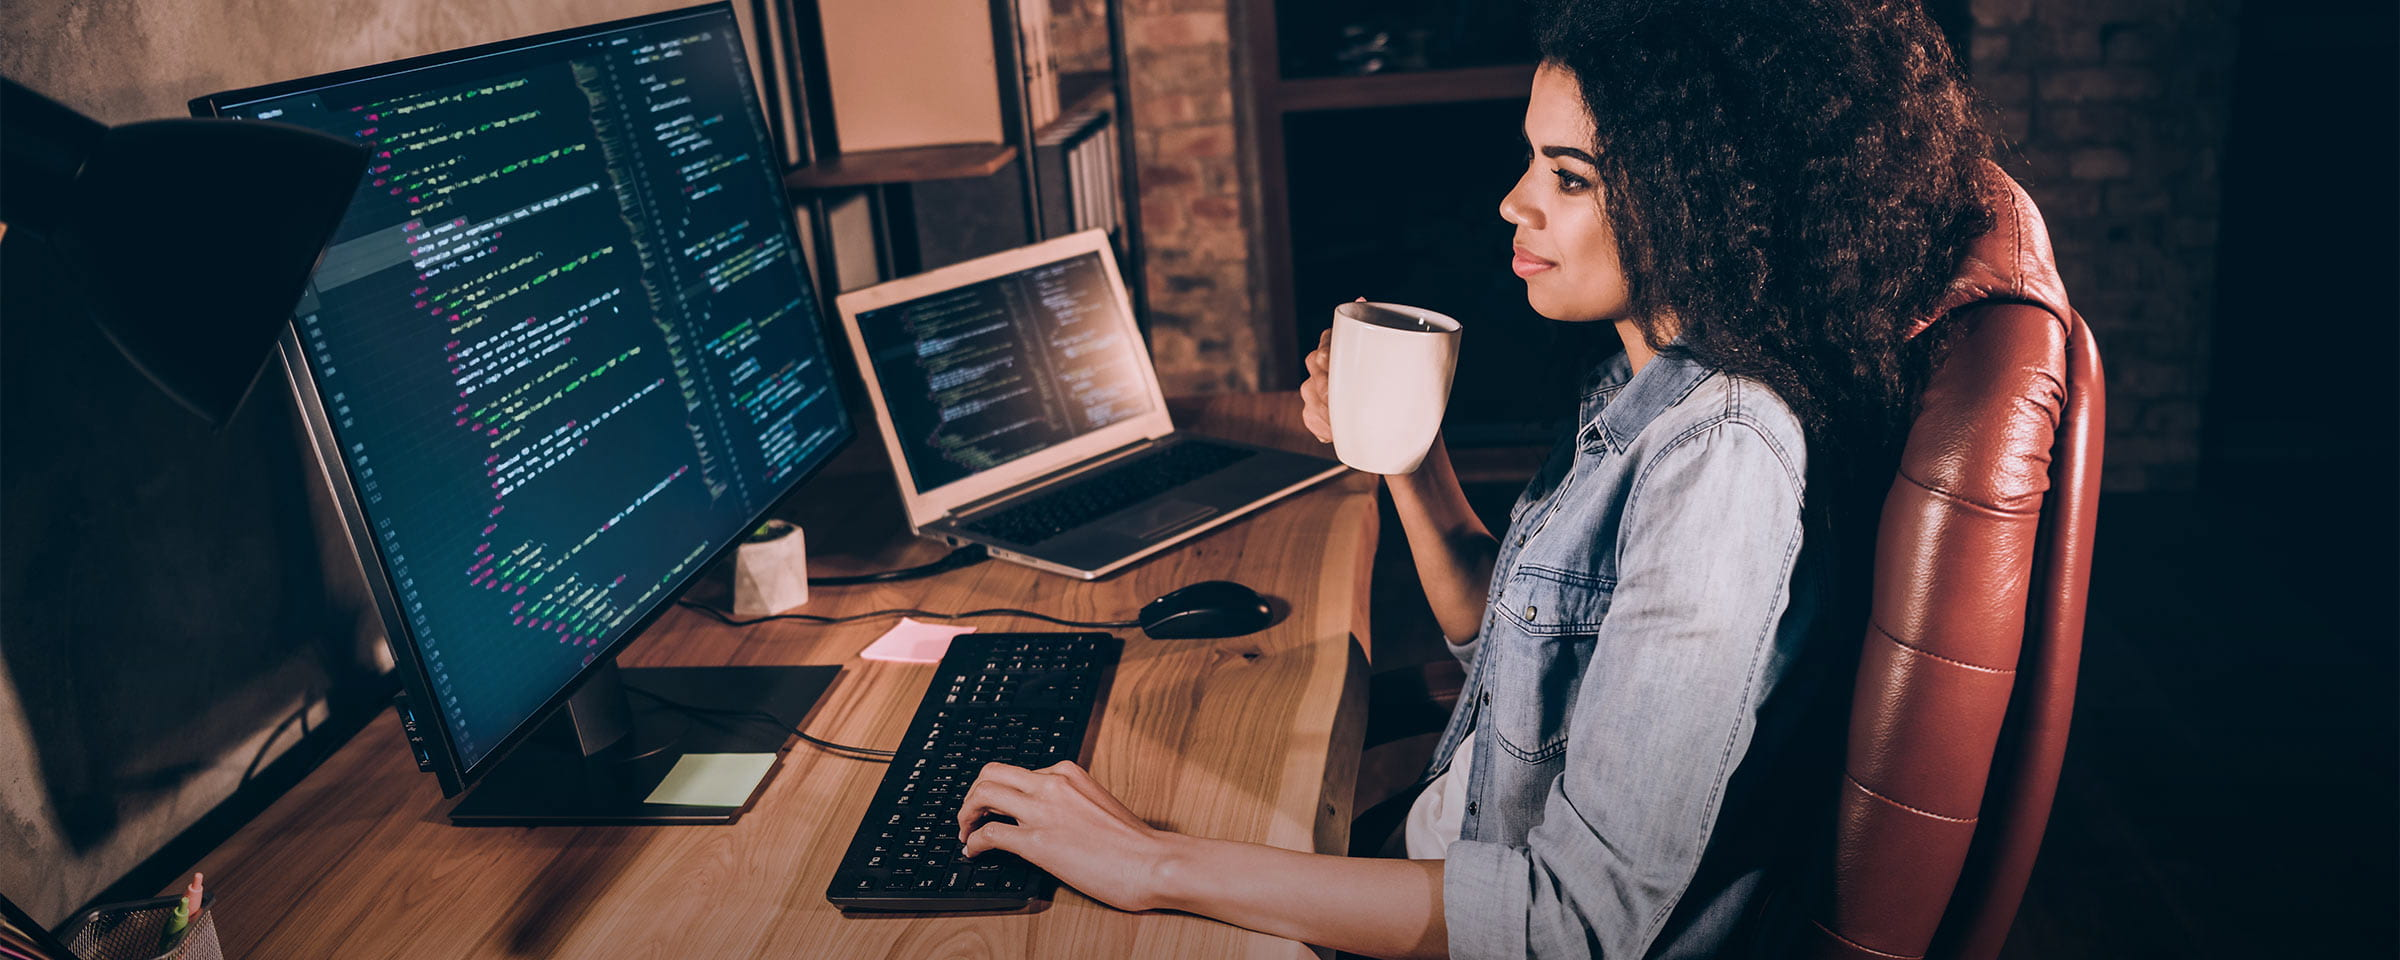 Woman drinking coffee while working on office computer